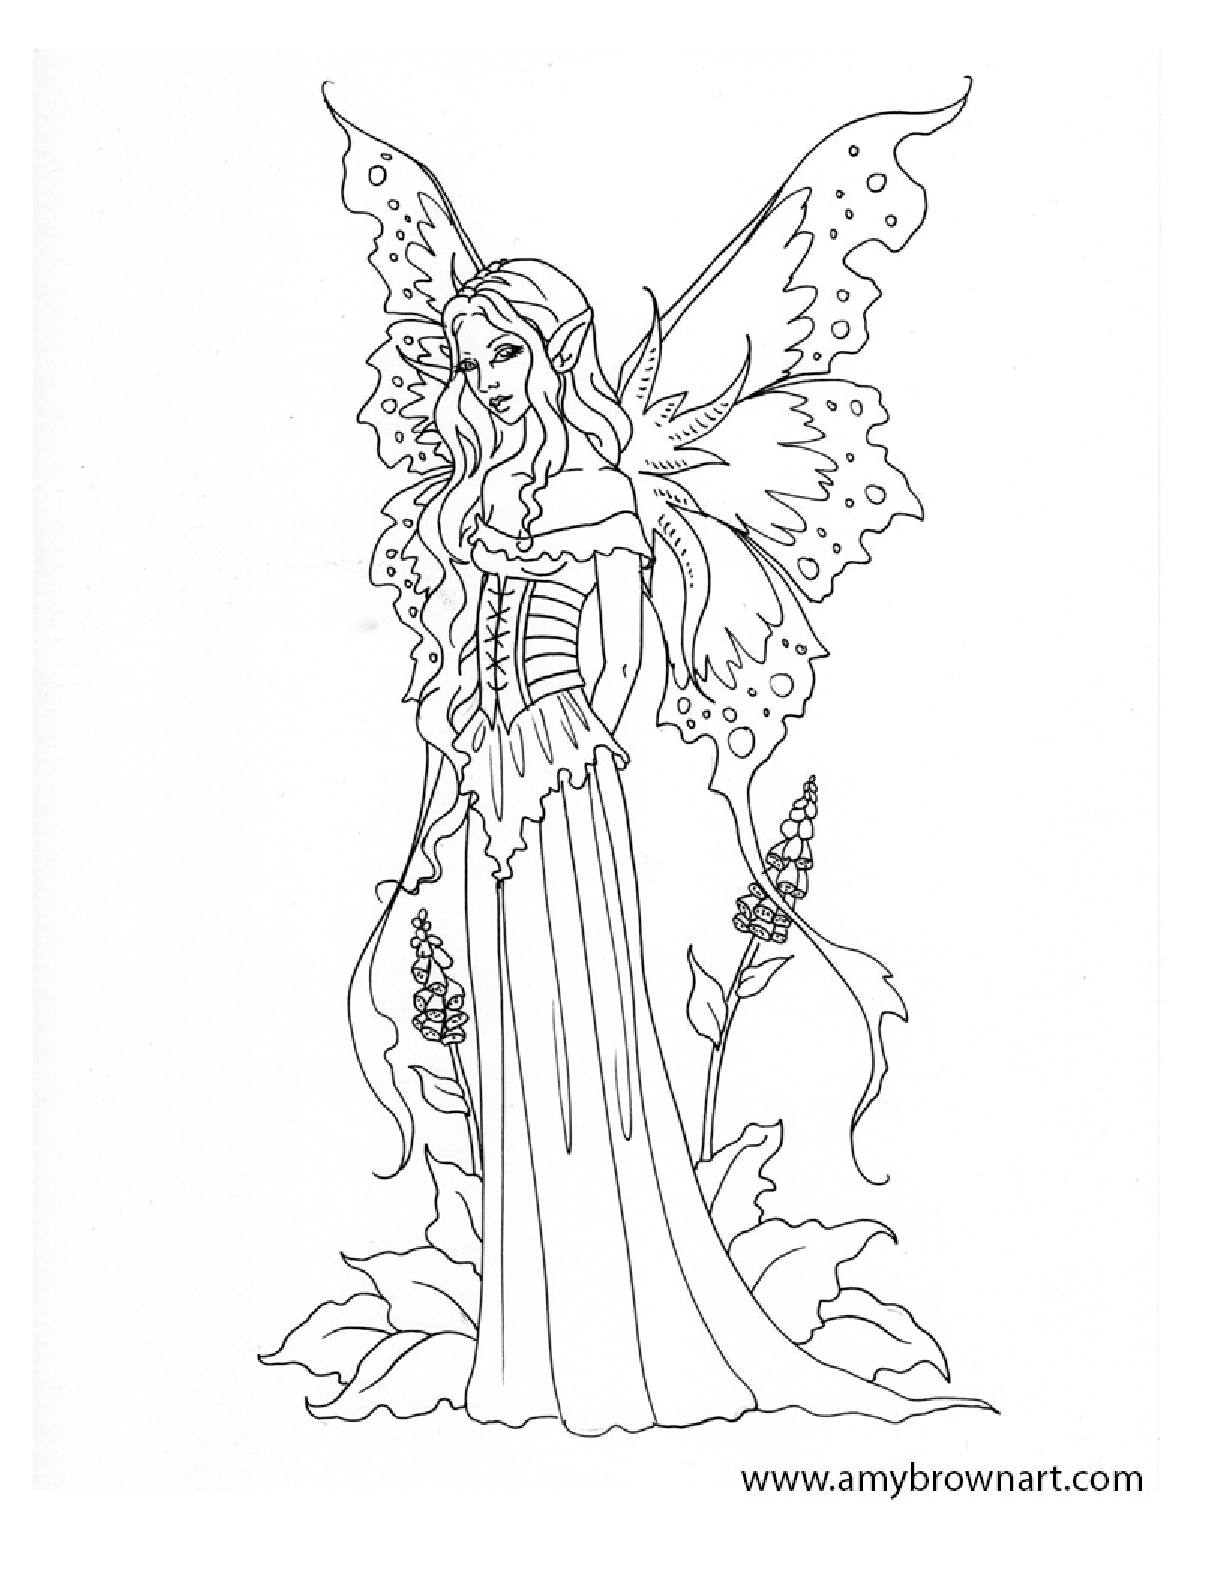 Advanced Coloring Pages Of Fairies : Artist amy brown fantasy myth mythical mystical legend elf